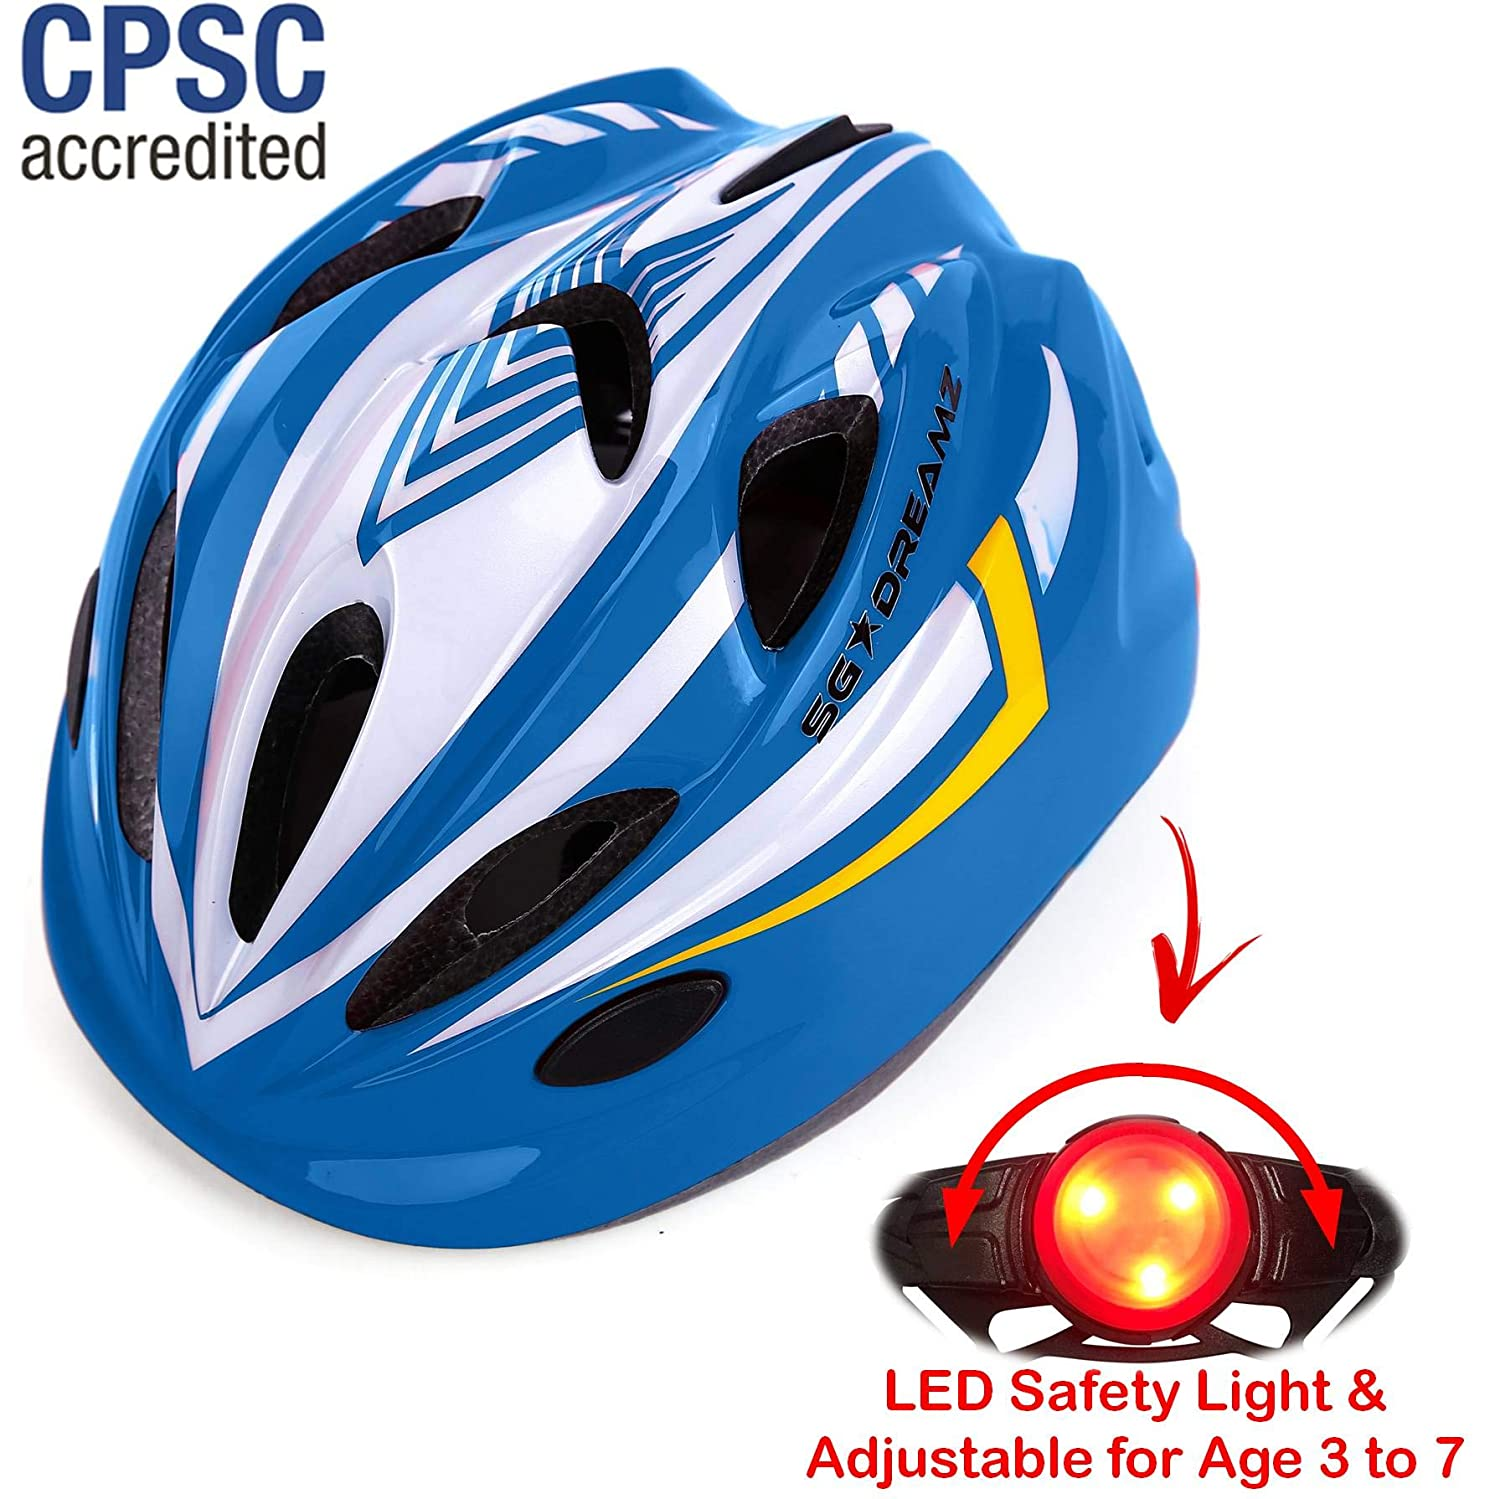 Ages 3 to 7 Durable Kid Bicycle Helmets with Fun Racing Design Boys and Girls Will Love Adjustable from Toddler to Youth Size CSPC Certified for Safety Kids Bike Helmet